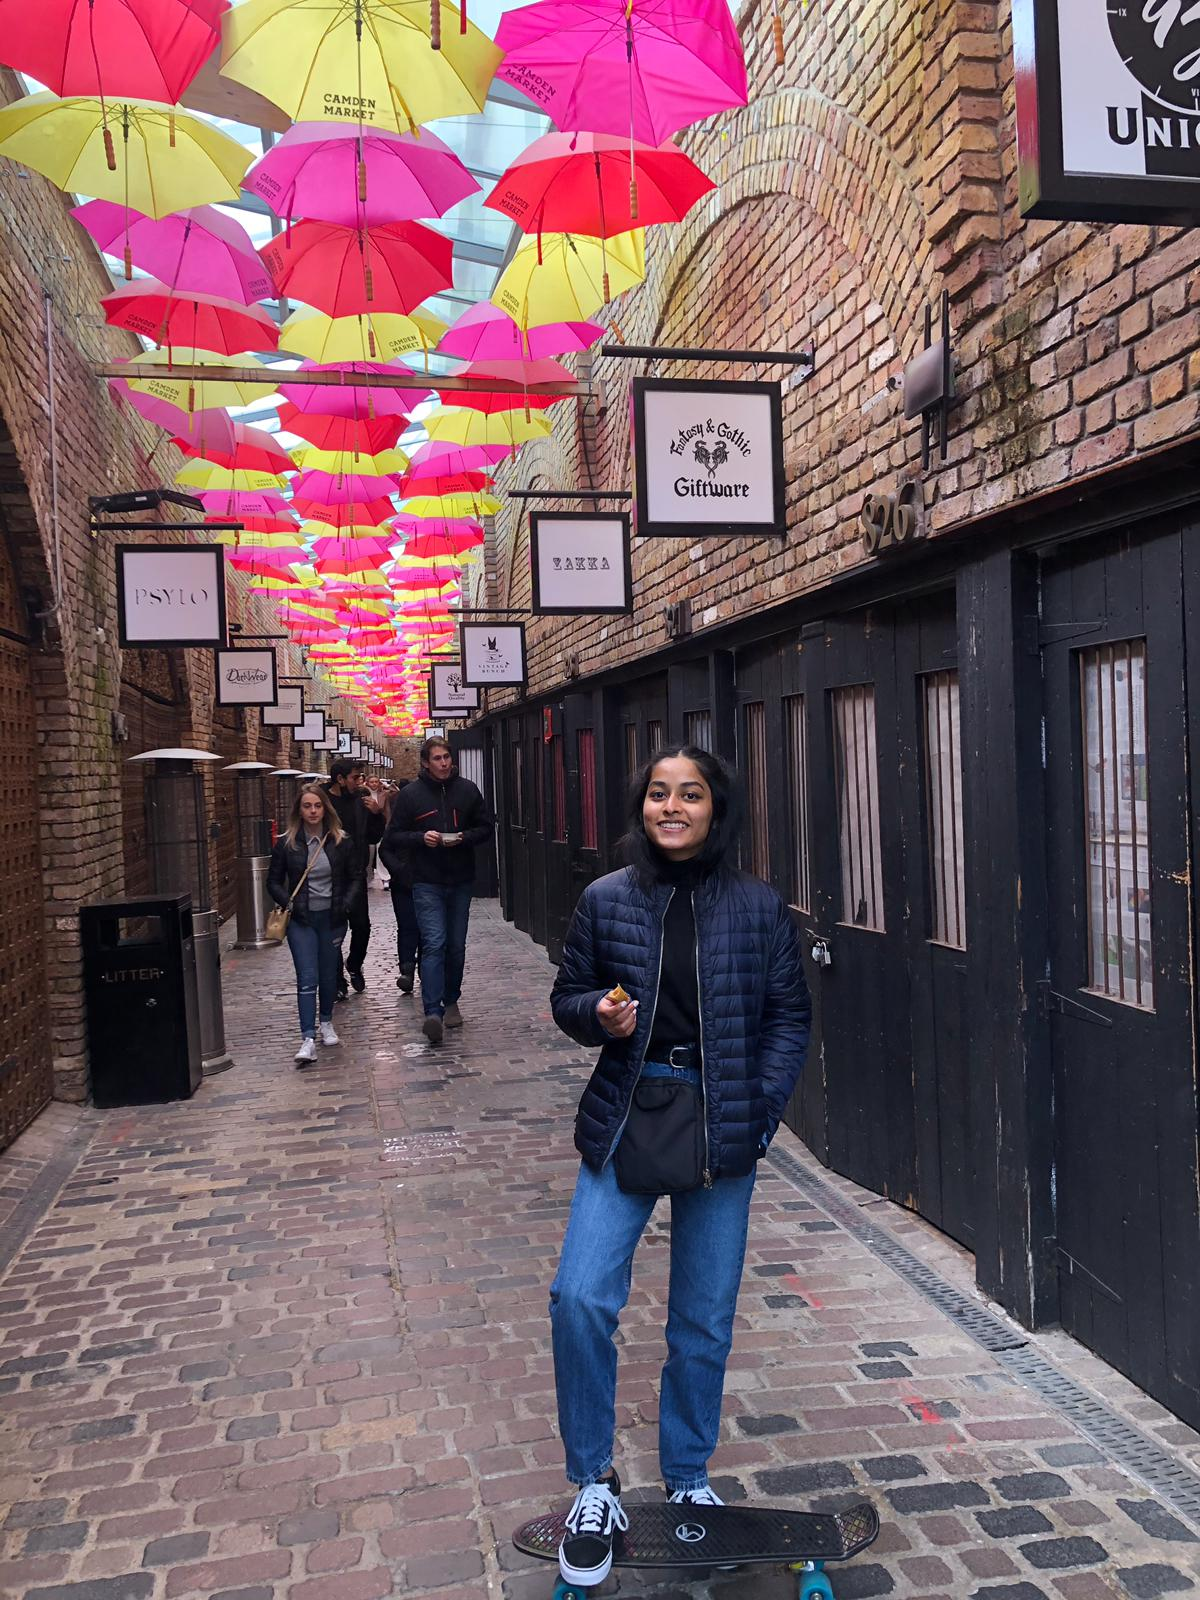 Savindri in an alleyway with an art installation of pink and yellow umbrellas hanging above. She is wearing blue jeans and a dark blue jacket. Her right leg is on a black skateboard